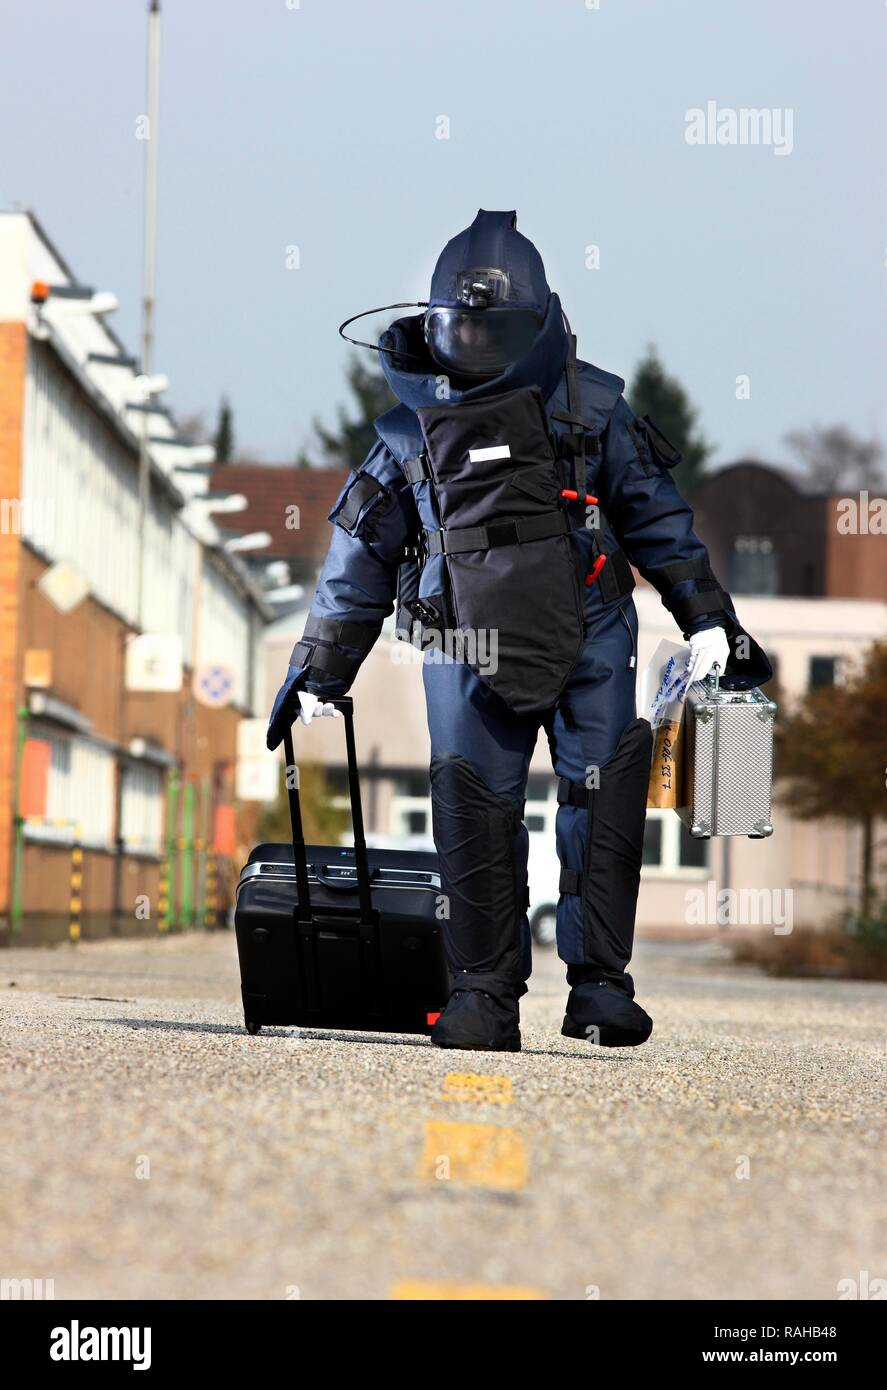 Forensic Suit High Resolution Stock Photography And Images Alamy